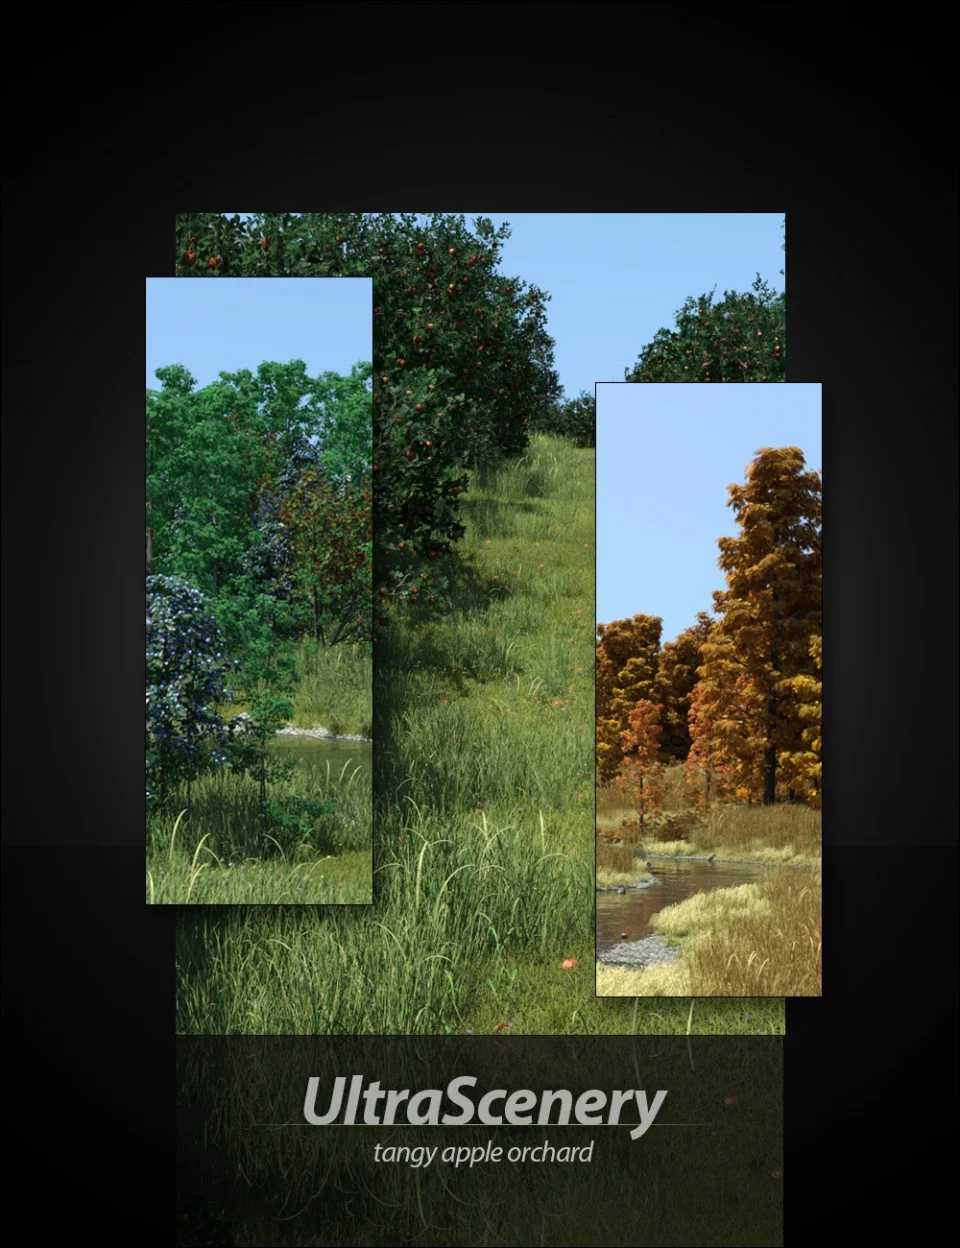 UltraScenery – Tangy Apple Orchard